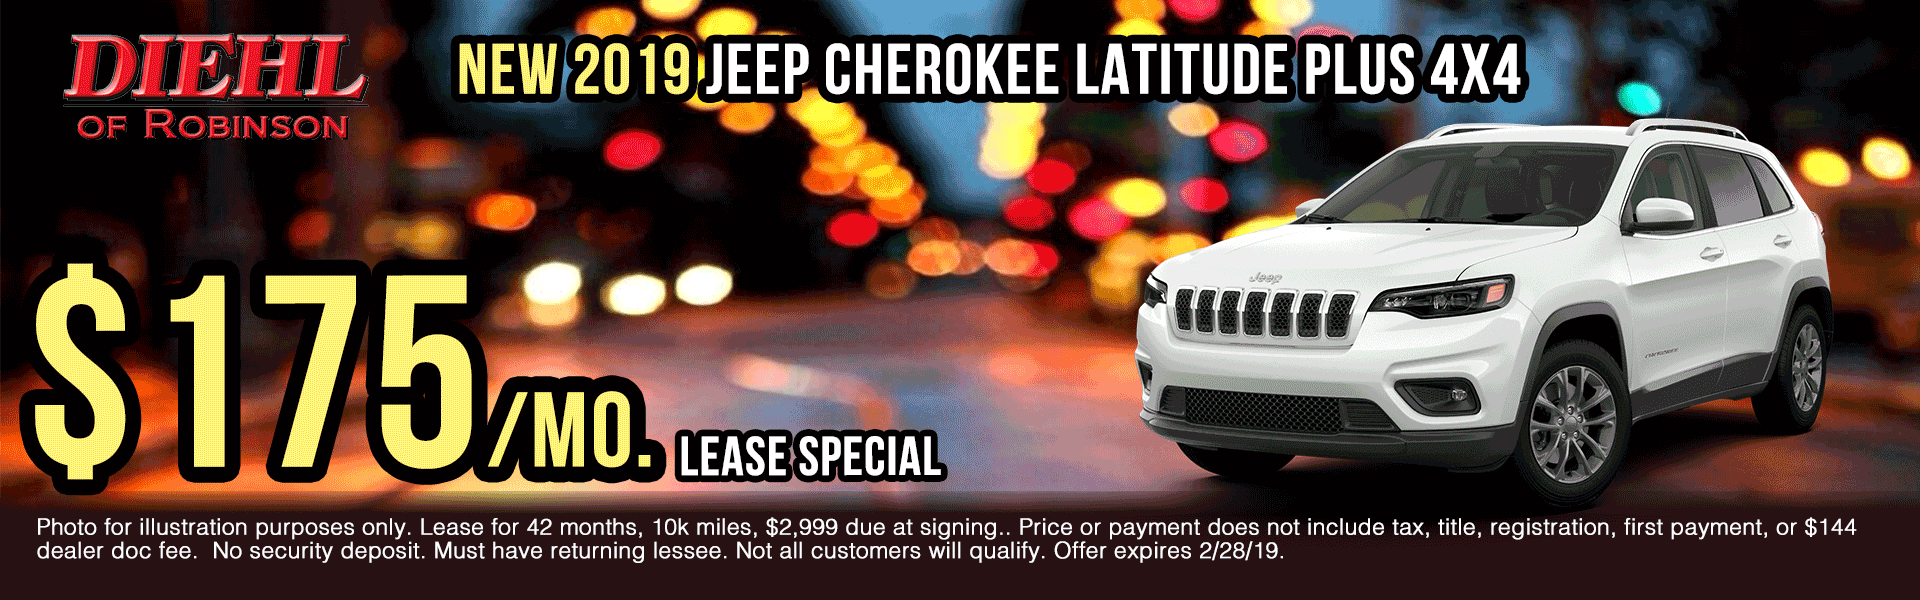 19J0111-2019-jeep-cherokee-latitue-plus-4x4 presidents day sales event Ram truck month new vehicle specials ram specials diehl specials diehl Chrysler dodge jeep ram of Robinson diehl of Robinson Diehl Automotive diehl Robinson chrysler specials jeep specials dodge specials truck specials lease specials